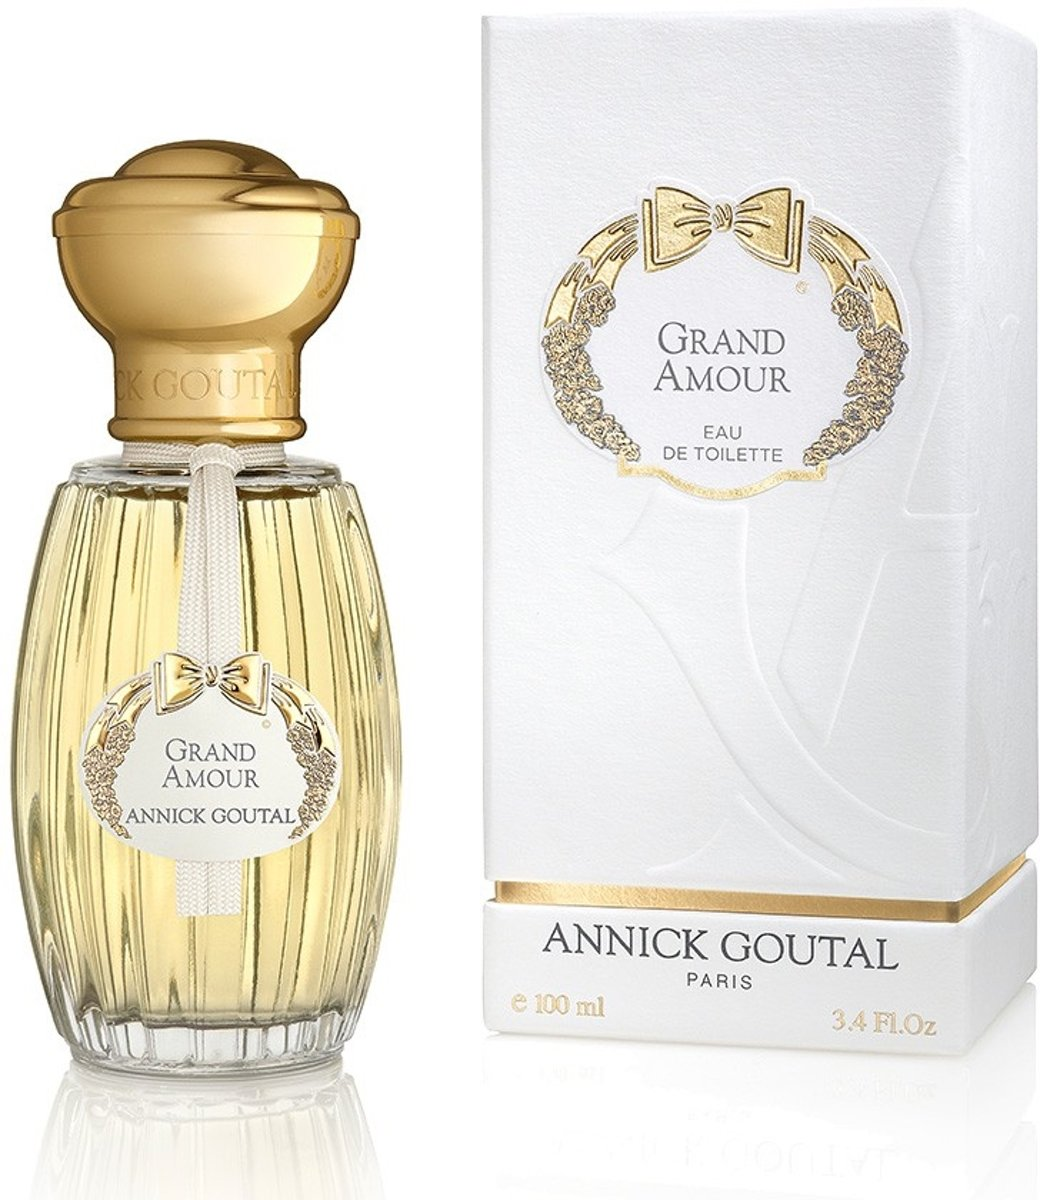 Annick Goutal Grand Amour 100ml Vrouwen 100ml eau de toilette